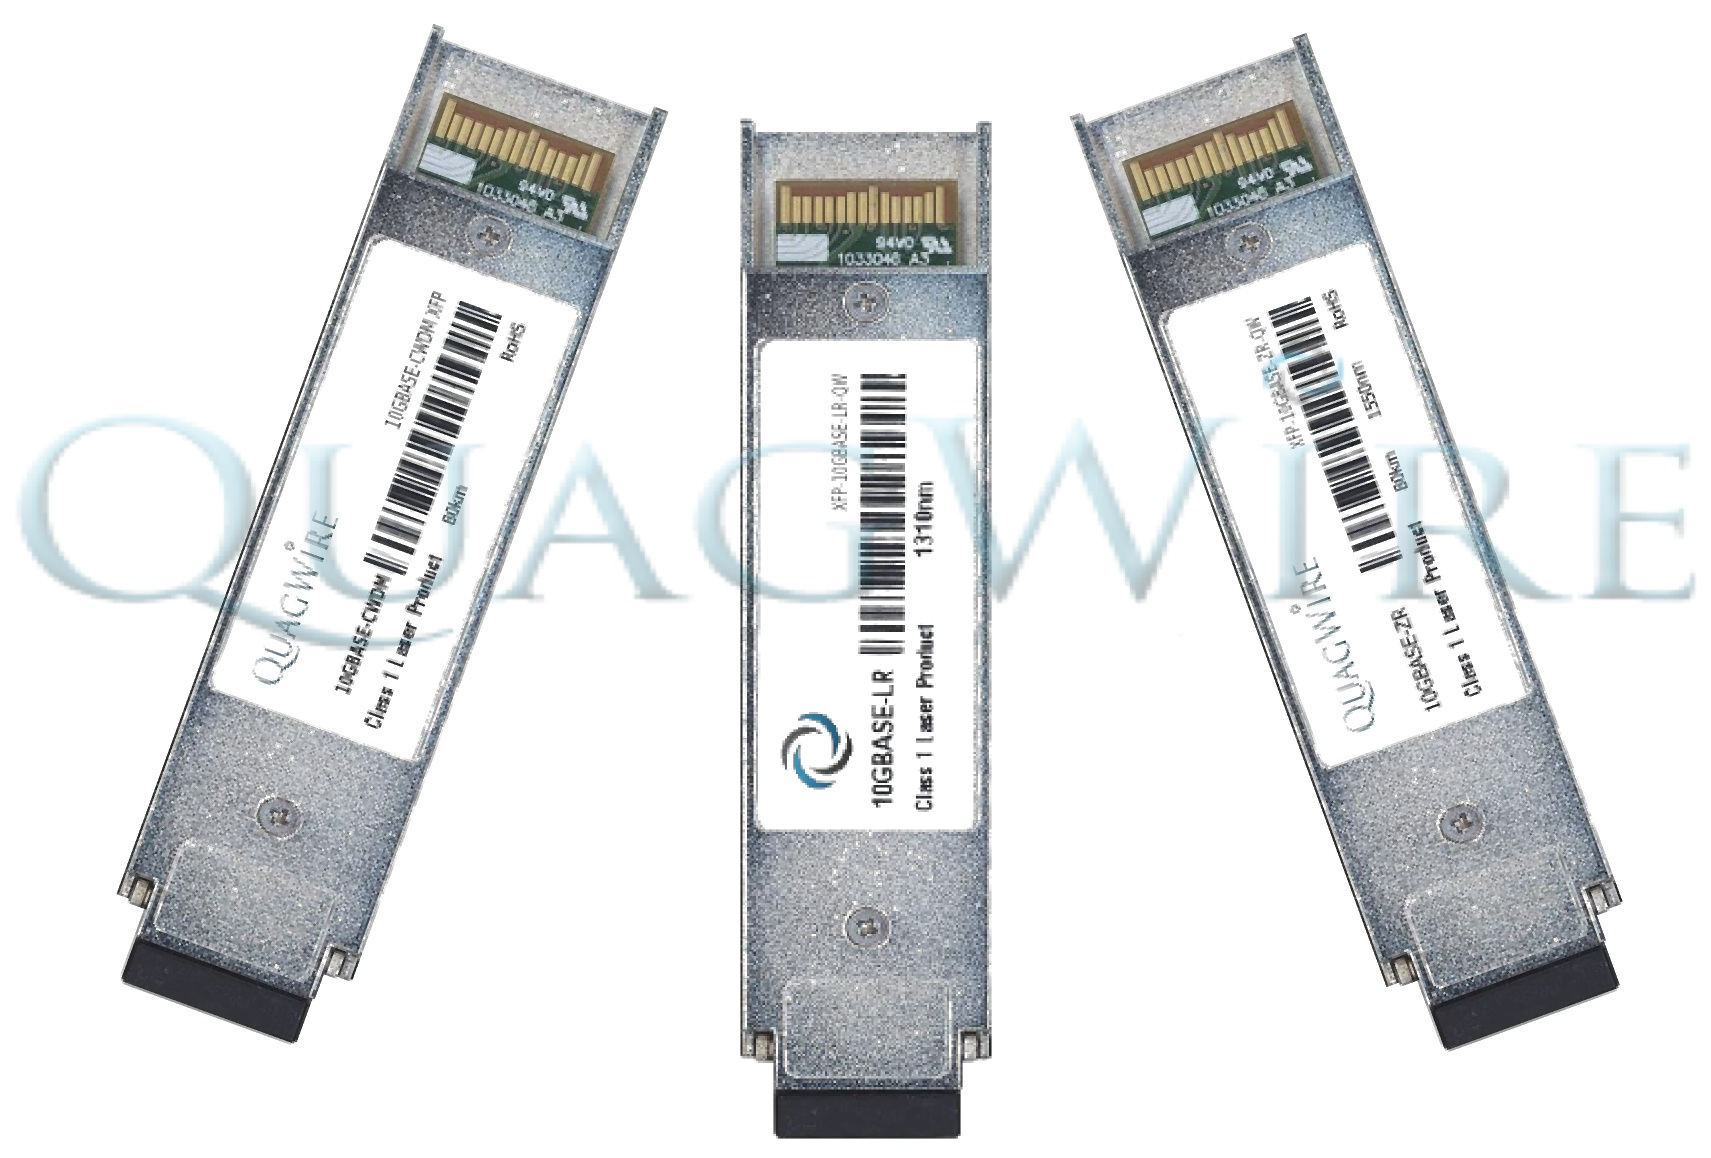 40GB-LR4-QSFP – Enterasys Compatible QSFP+ Transceiver